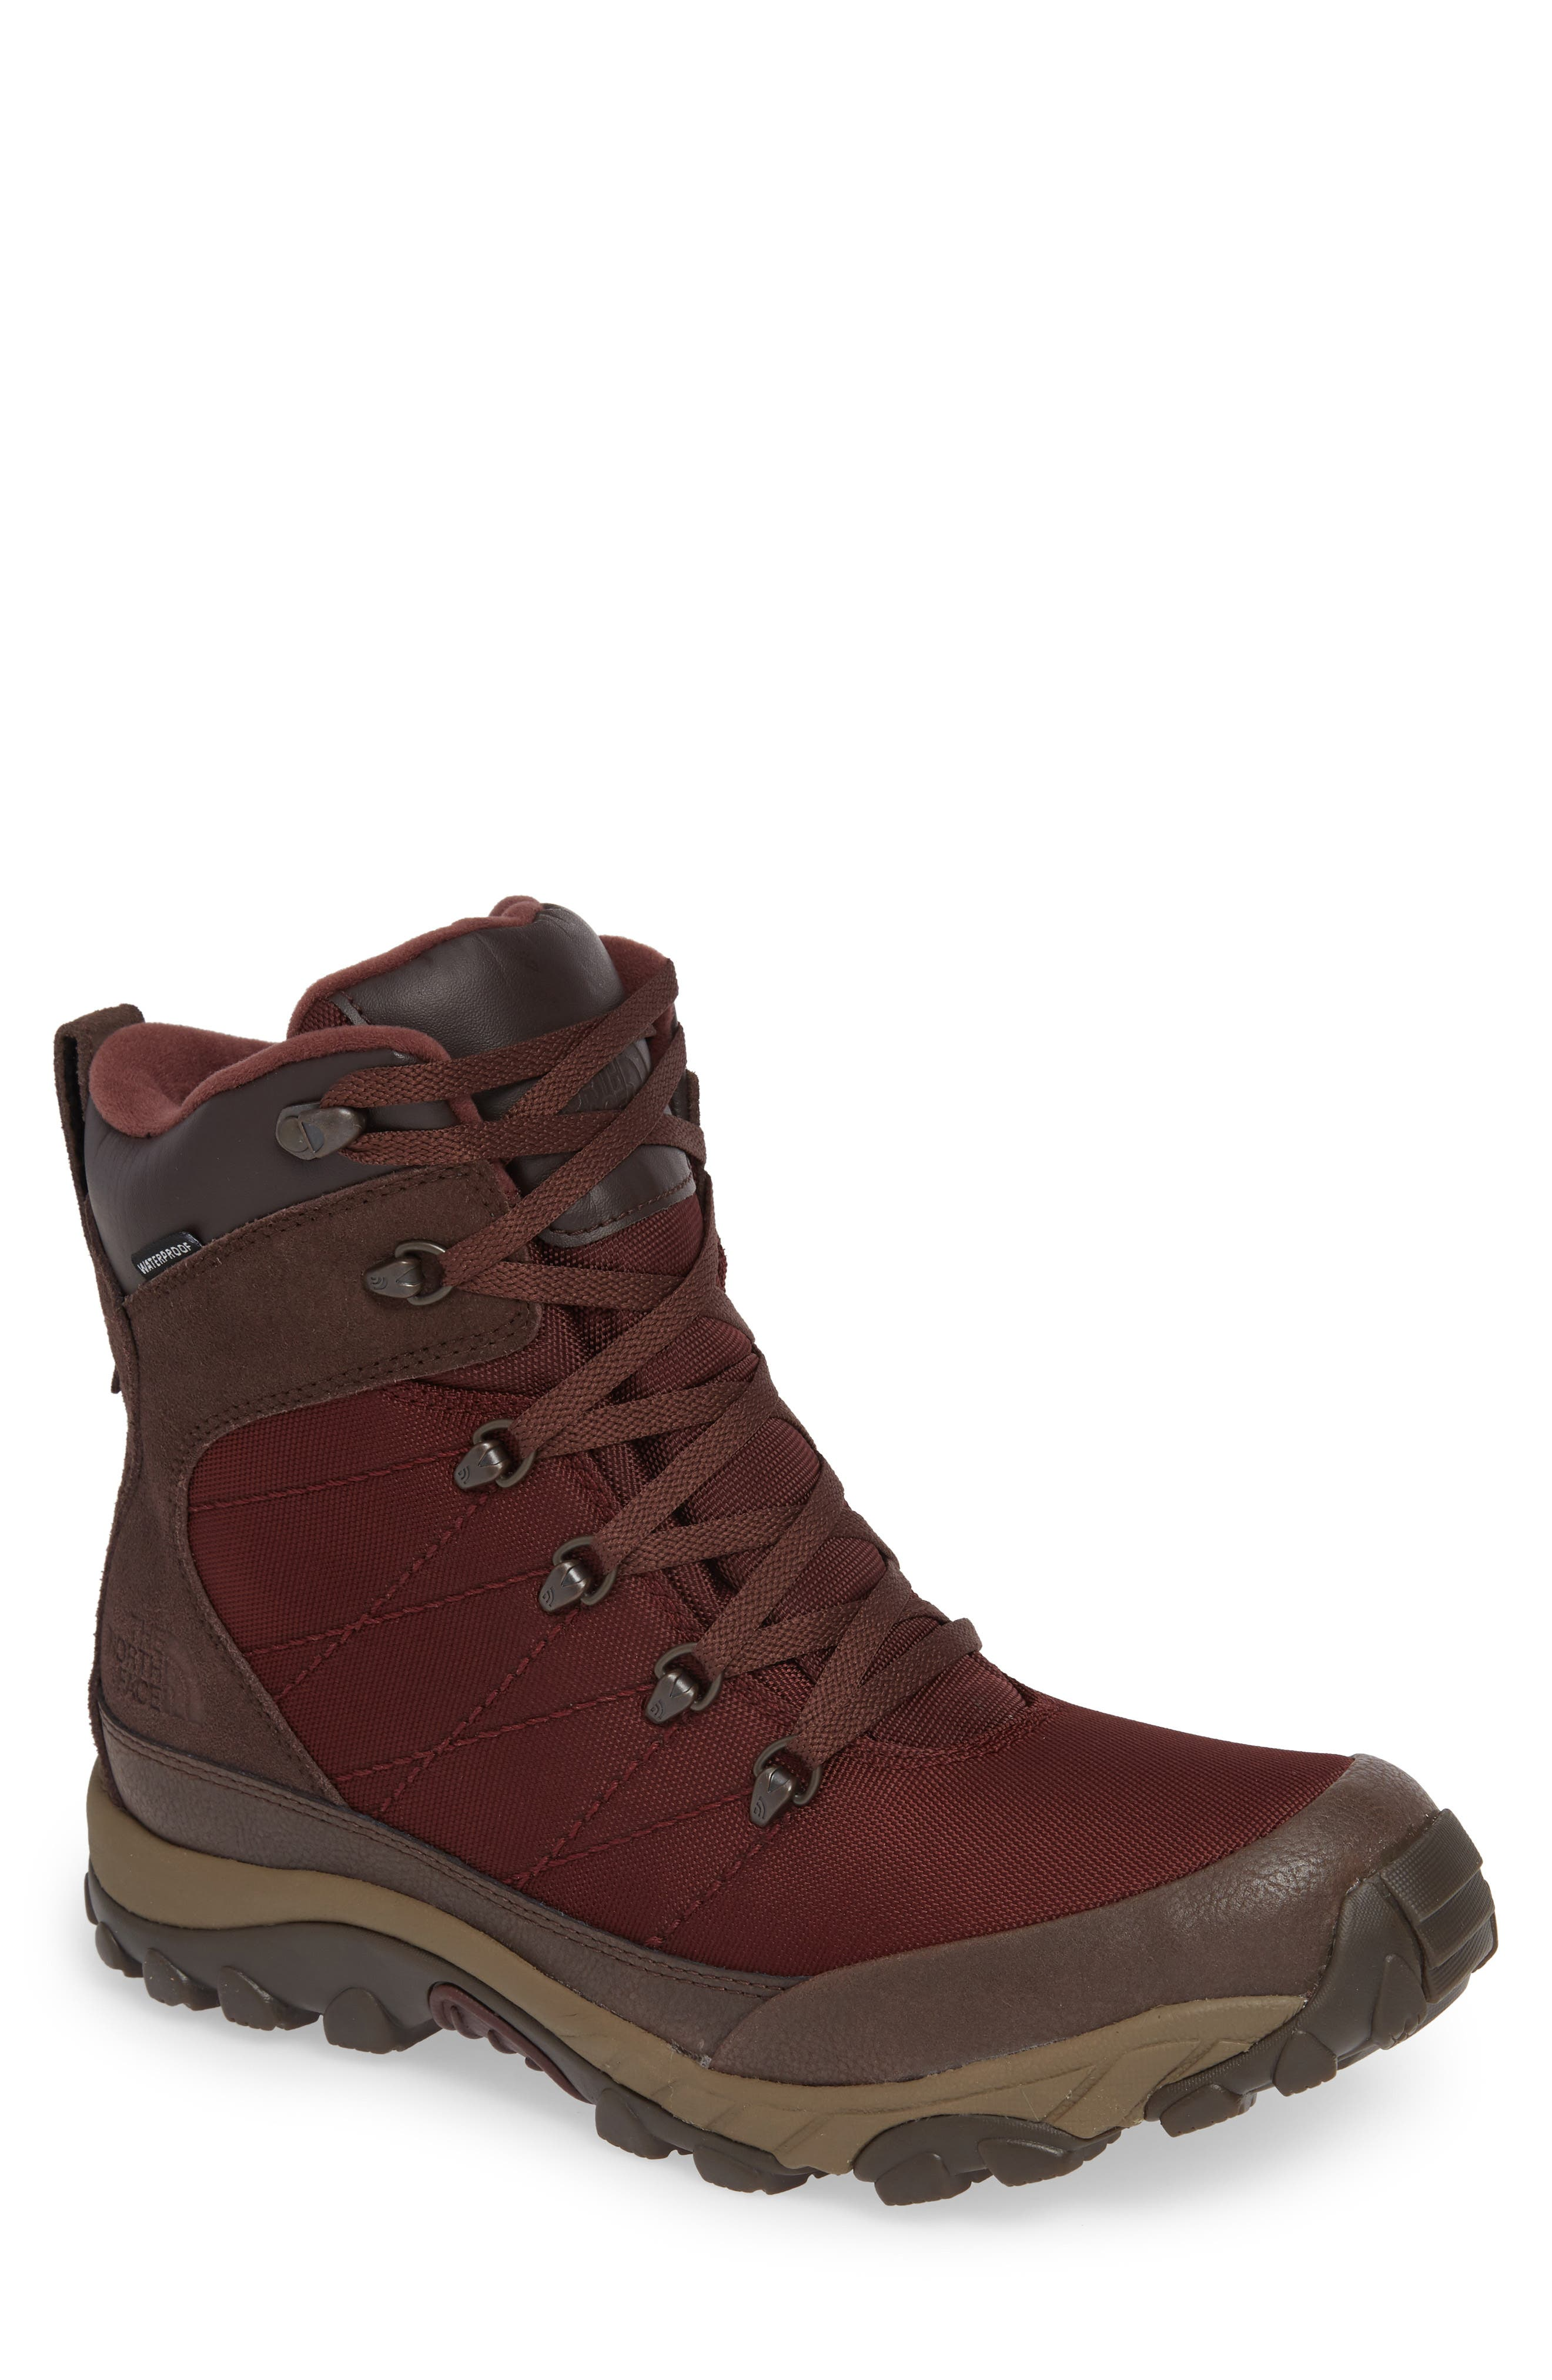 Chilkat Snow Waterproof Boot,                             Main thumbnail 1, color,                             BITTER CHOCOLATE BROWN